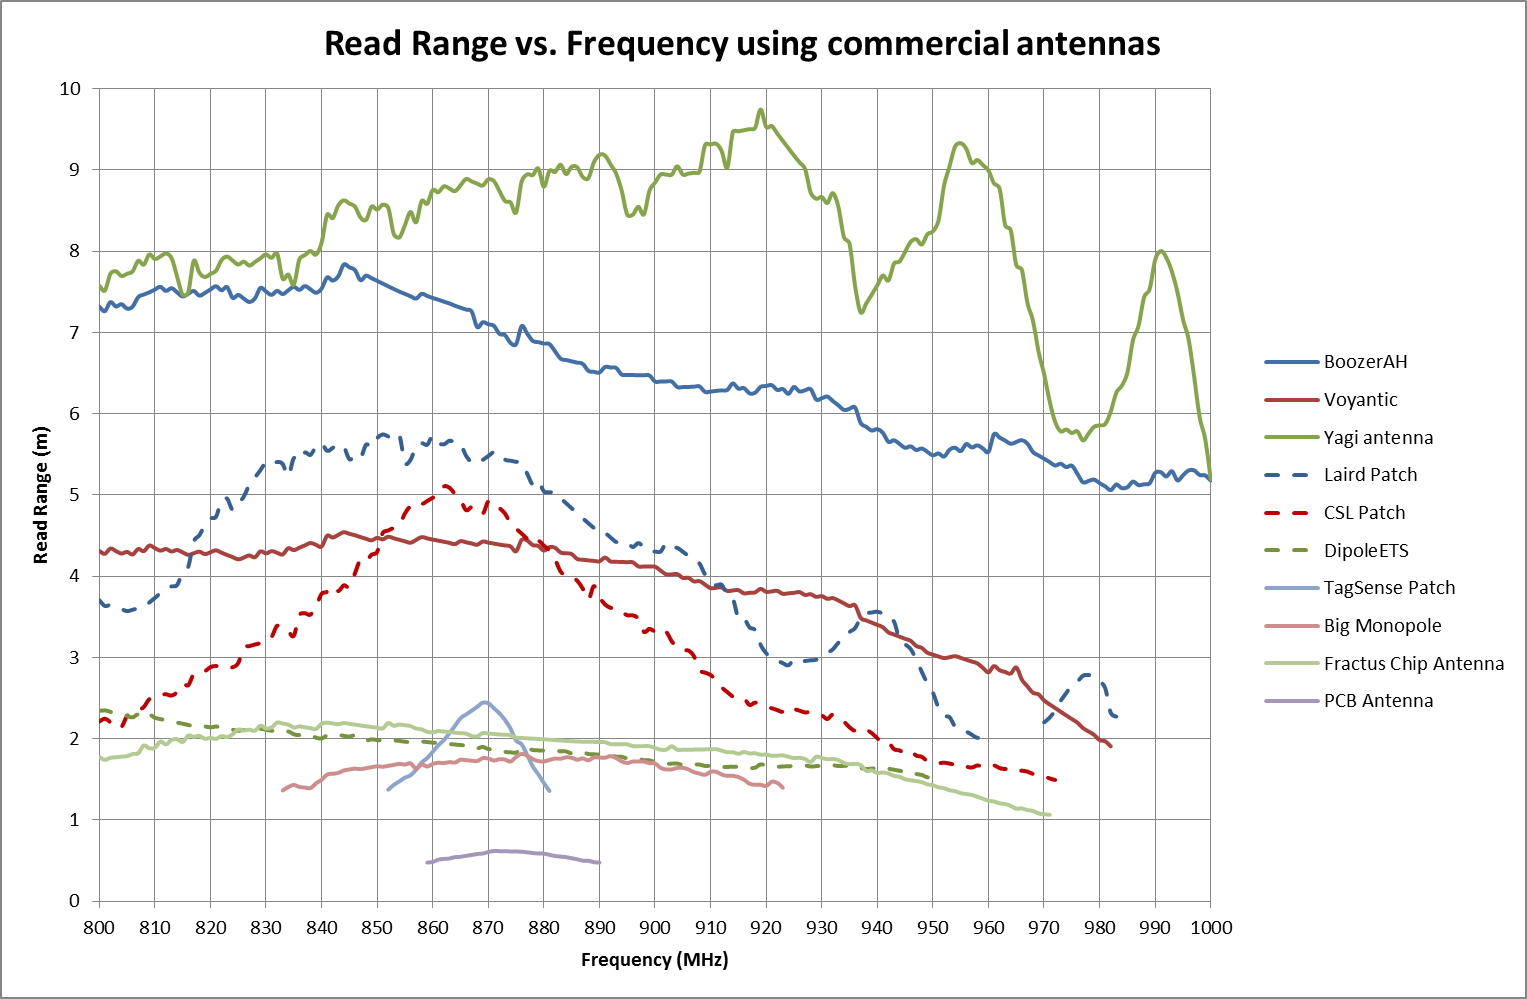 The link between antenna size and read range in RFID